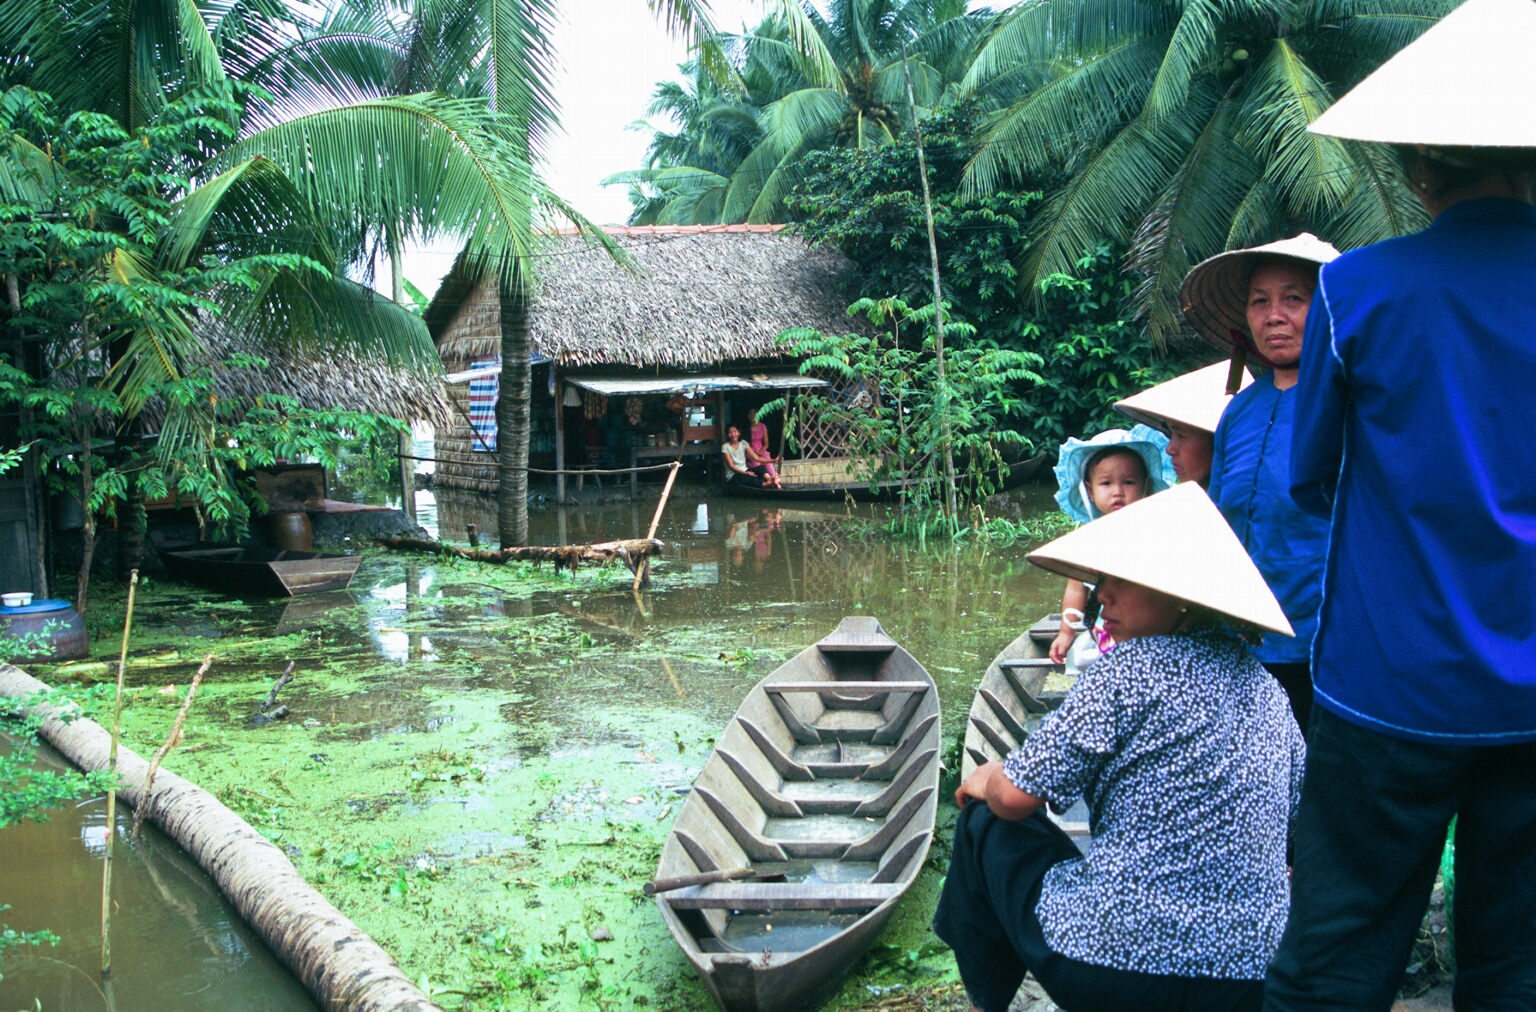 Flooding in the Mekong Delta